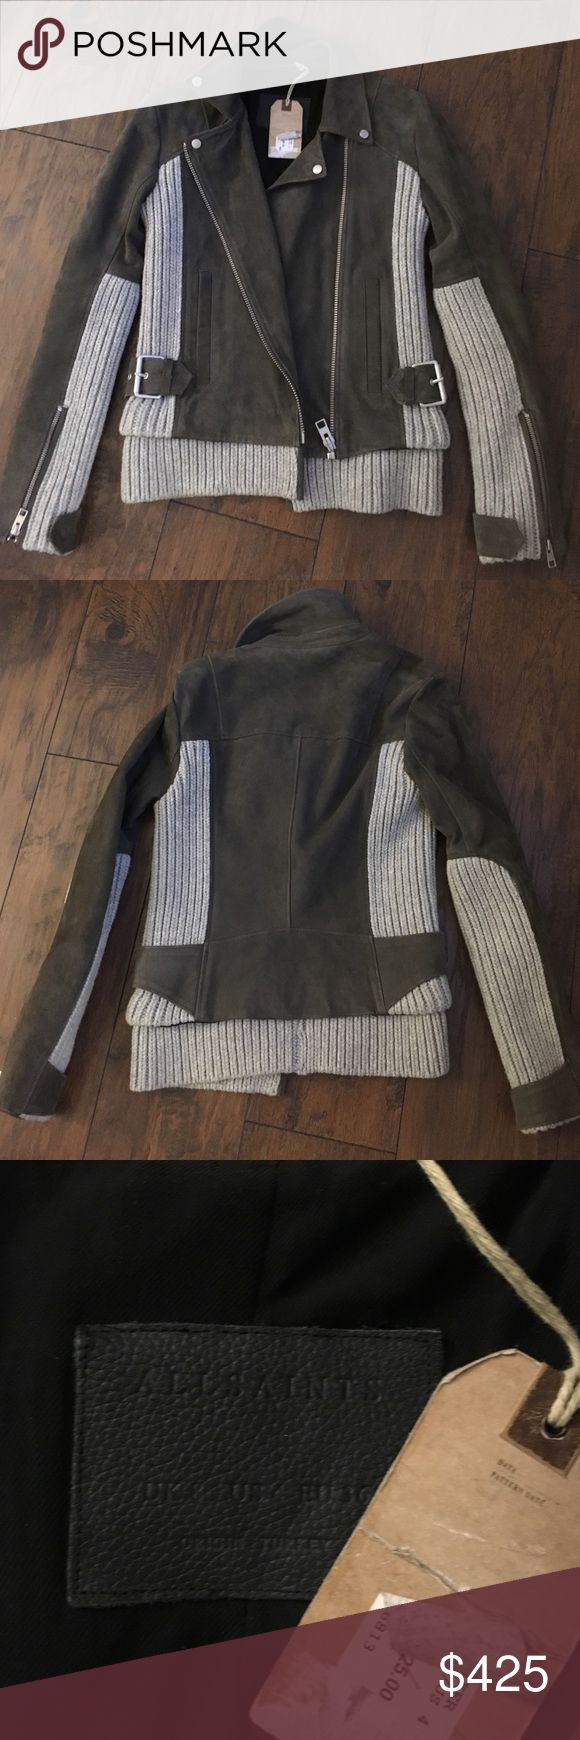 Allsaints Axel suede biker NWT picked this up and It's too tight for me. It's absolutely gorgeous and luxurious but I am not an allsaints 4!!! Color is grey/mist U.K. 8 US4 All Saints Jackets & Coats